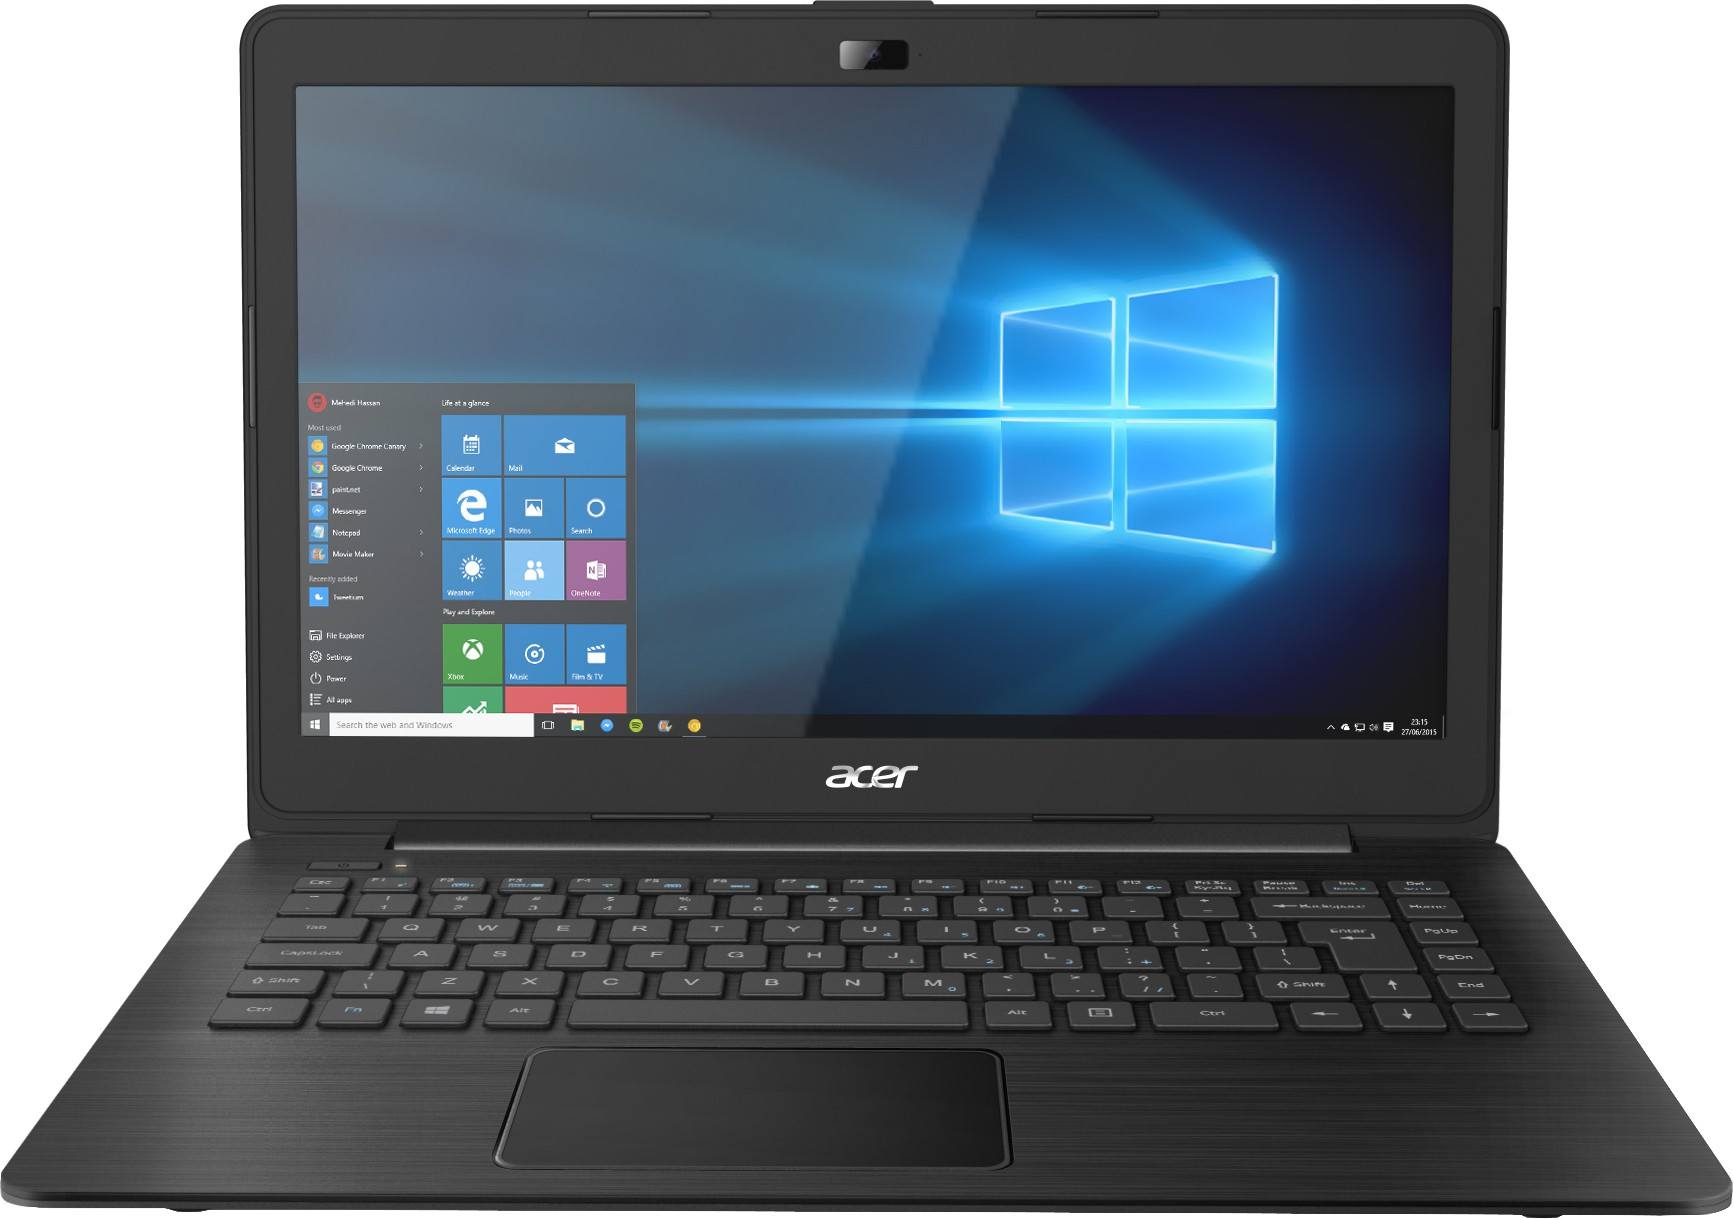 Deals - Jodhpur - From Rs. 12990 <br> Intel Core Budget Laptops<br> Category - computers<br> Business - Flipkart.com